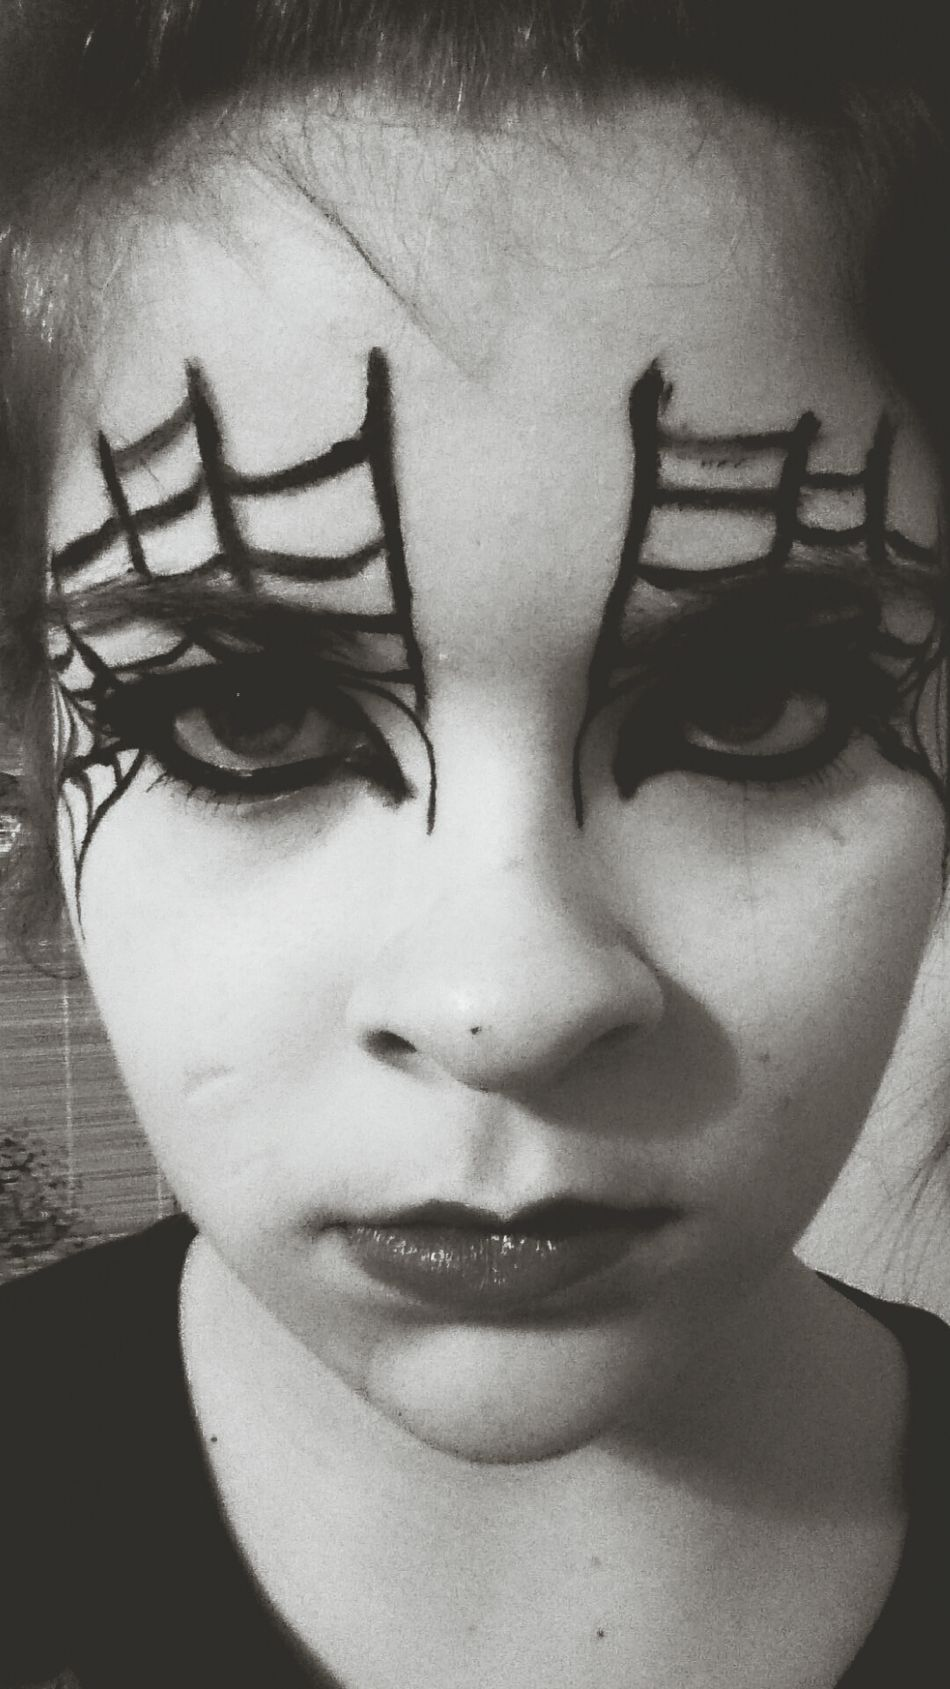 So this is how I'm gonna do my halloween makeup~ On a different note, I realized I bought waterproof eyeliner, so basically I'm screwed... Makeup Help Me Please Does Anyone Have Any Tips? Im Screwed.